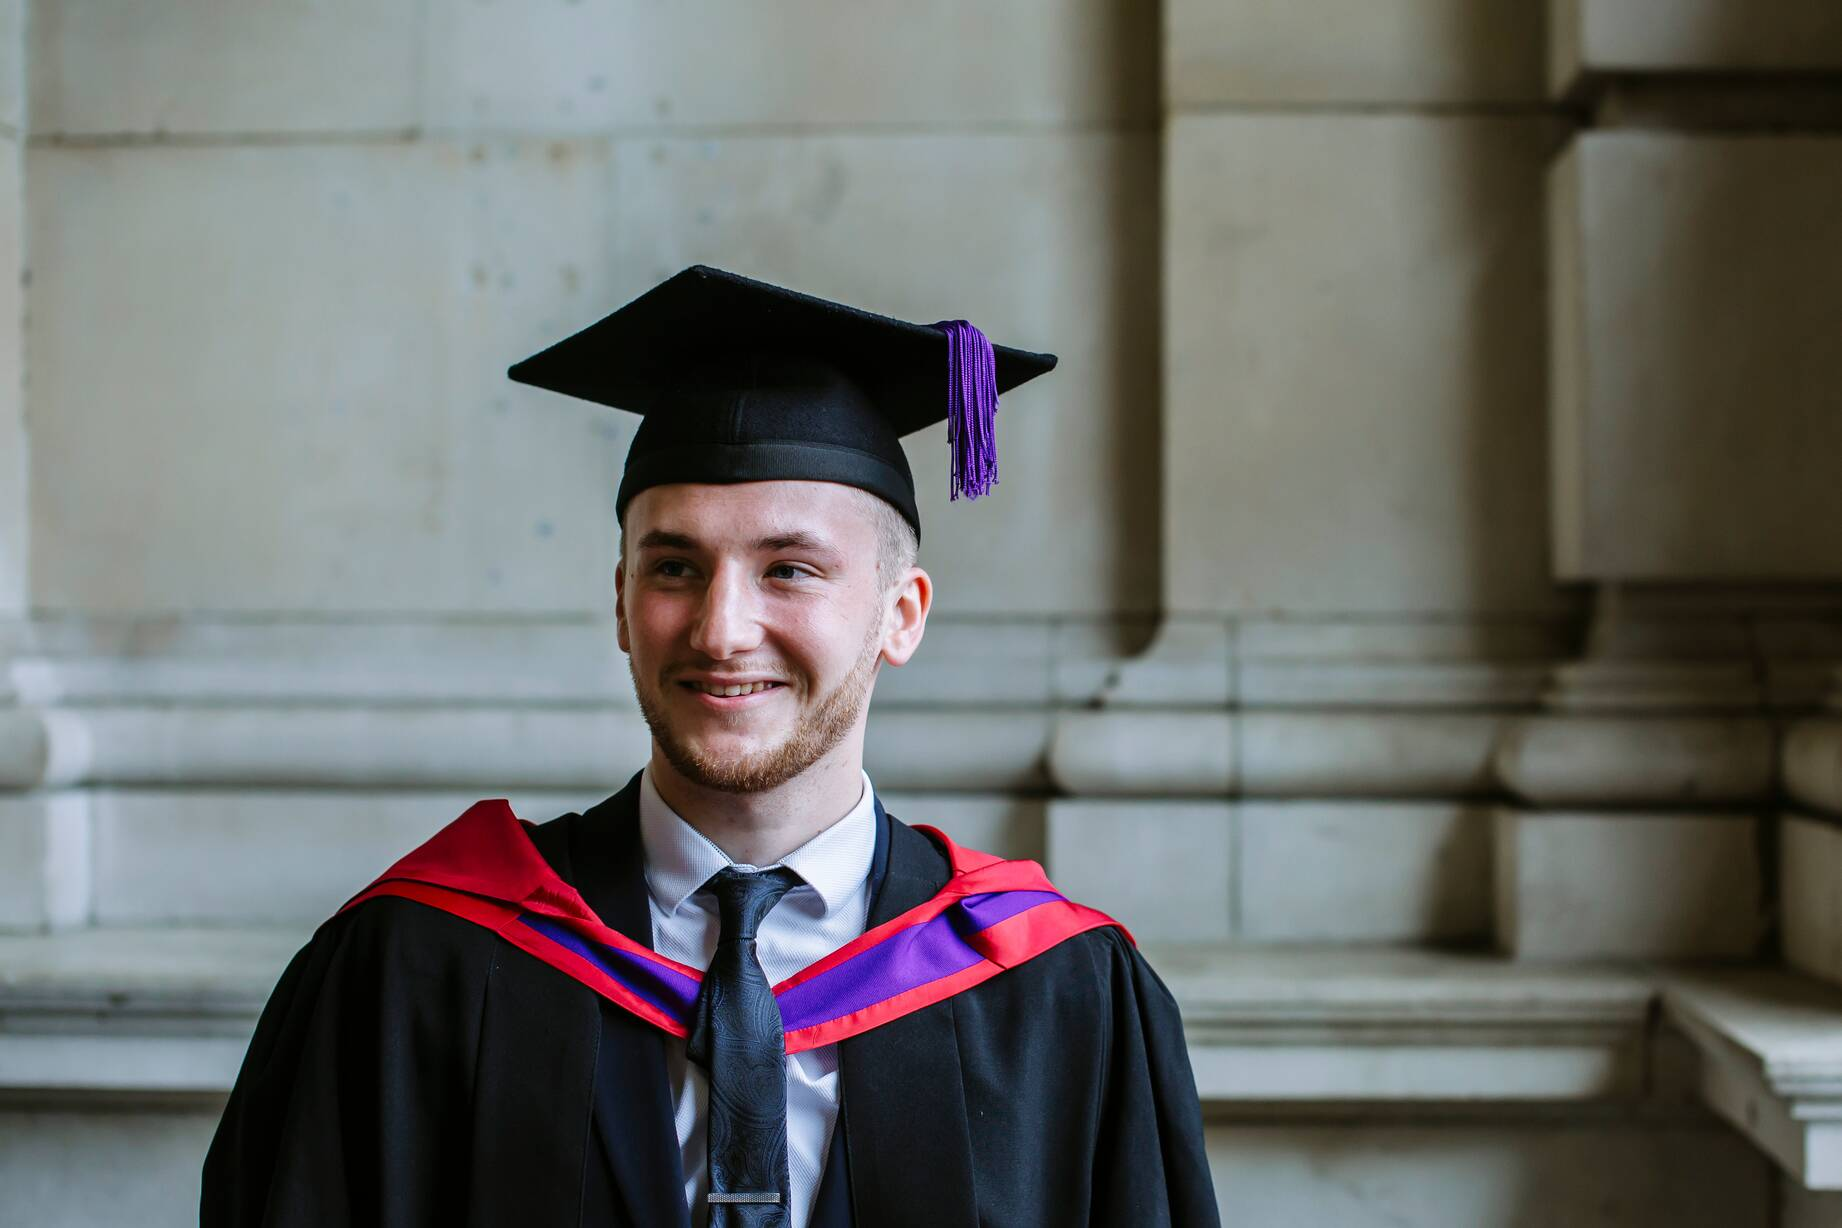 Alumnus Daniel on how an MSc with UoP led to a job in cybercrime